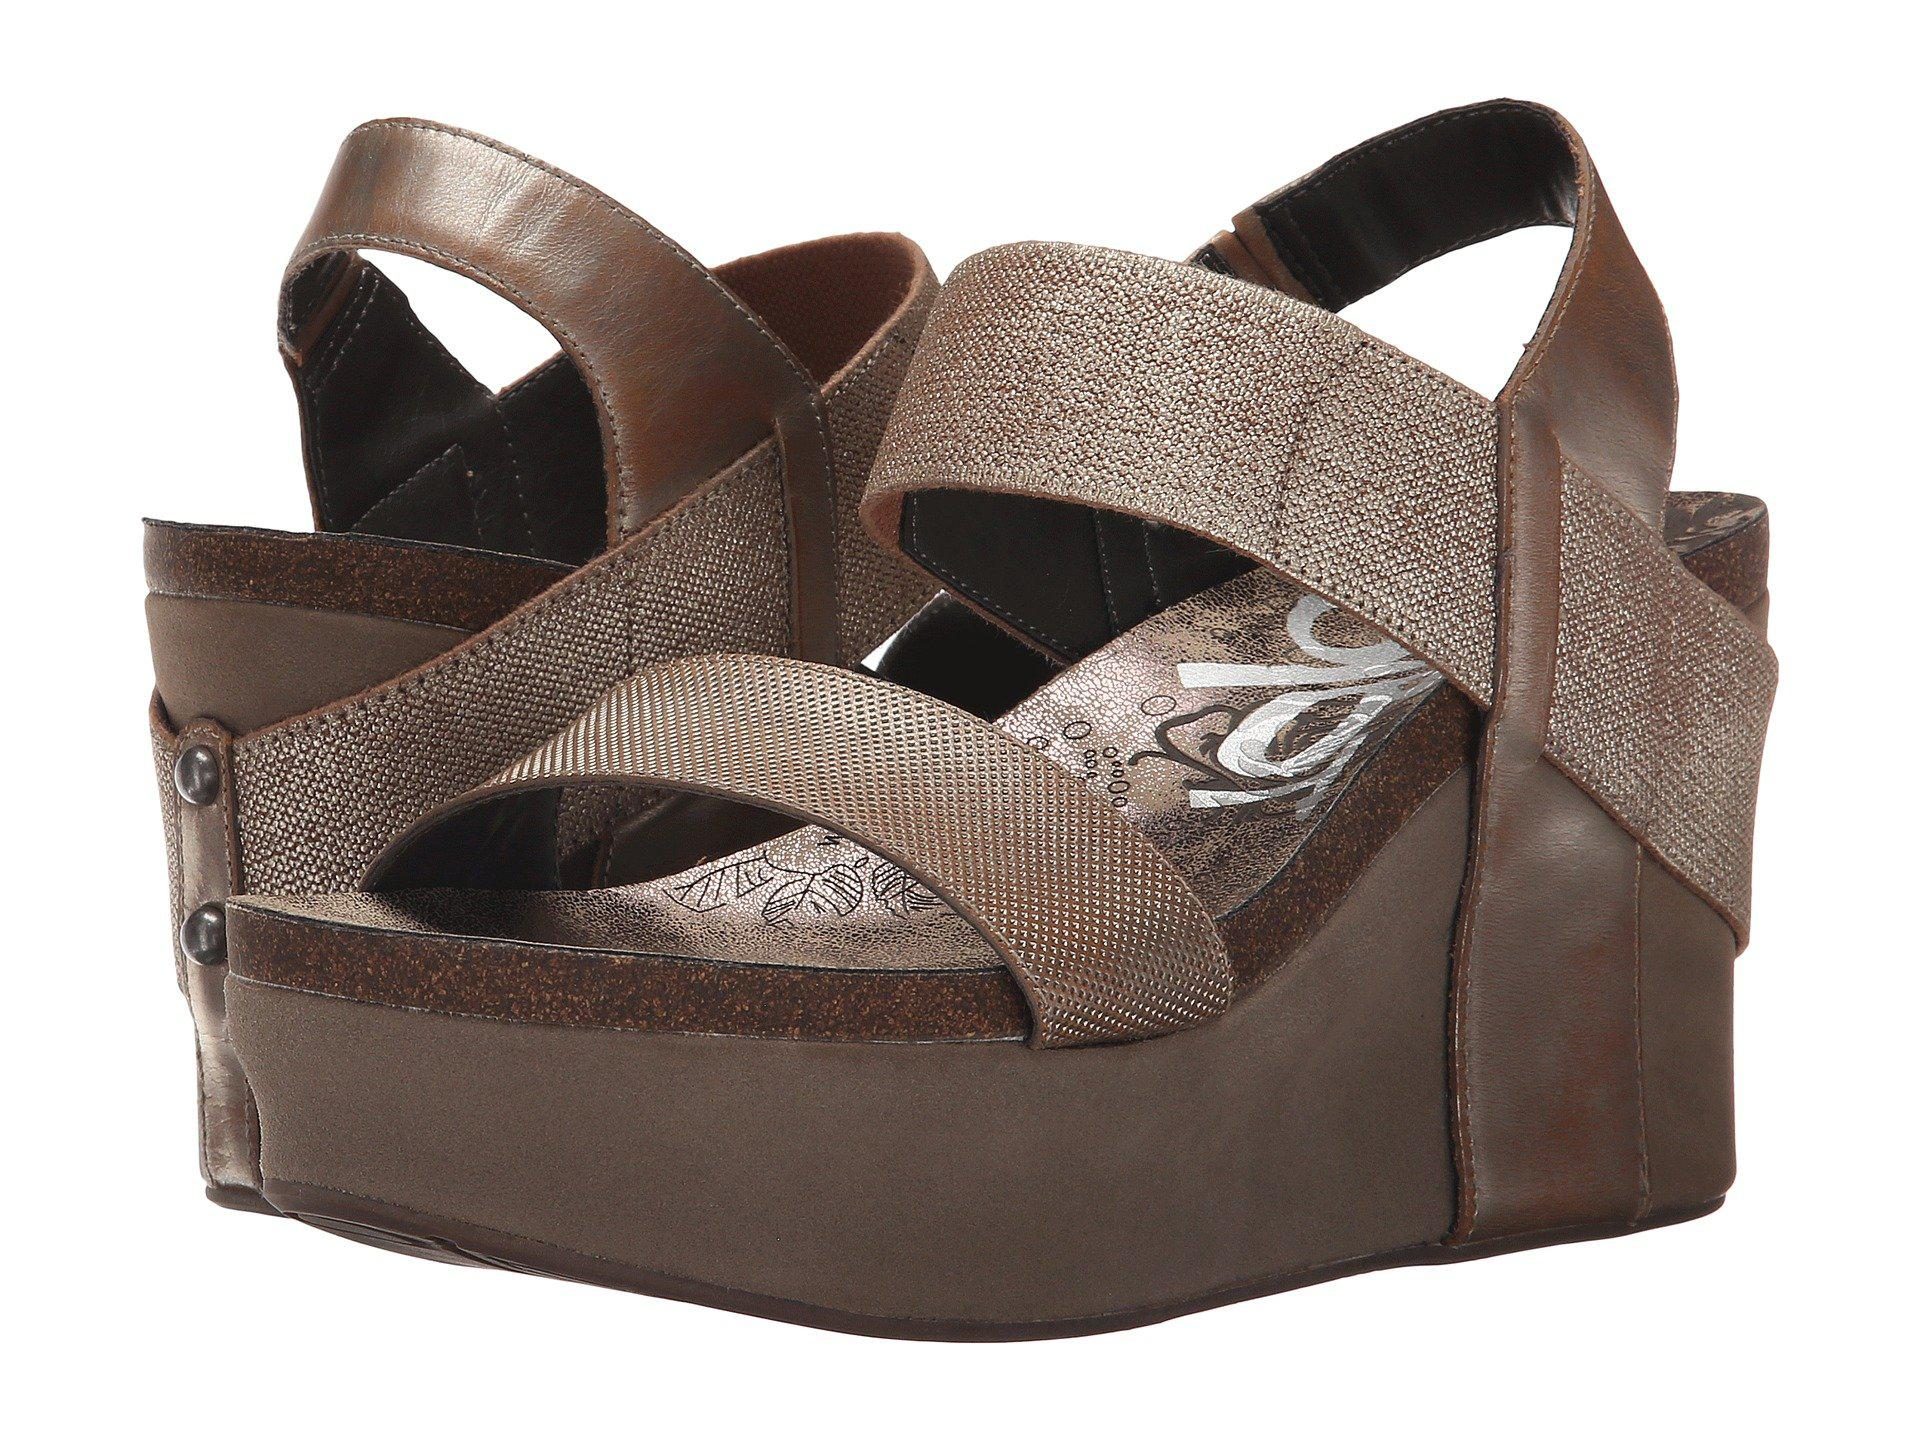 f55e42c6ddf Lyst - Otbt Bushnell (black) Women s Wedge Shoes in Natural - Save 20%